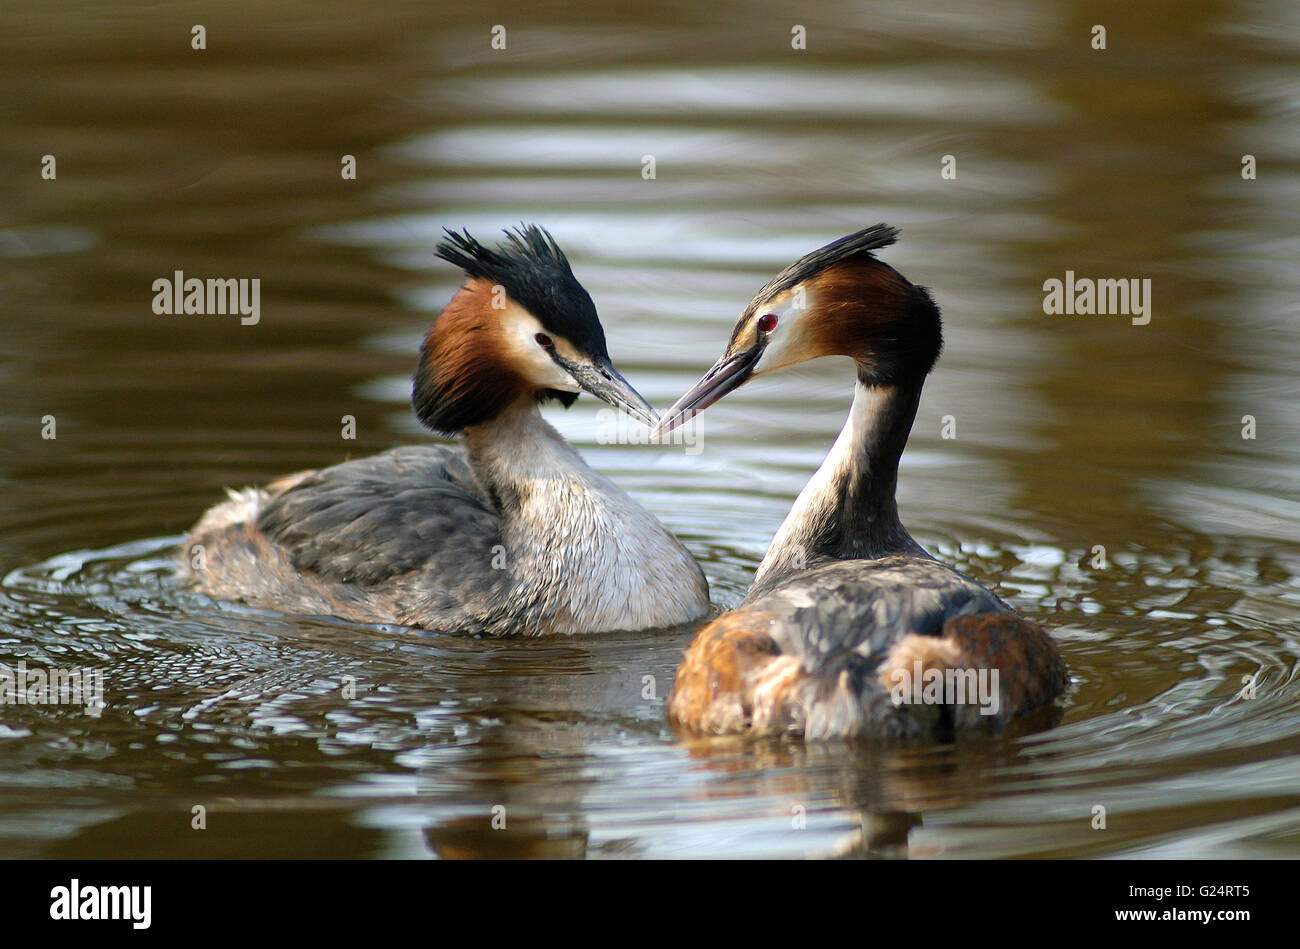 Great crested grebe (Podiceps cristatus) couple swimming in pond in spring - Stock Image